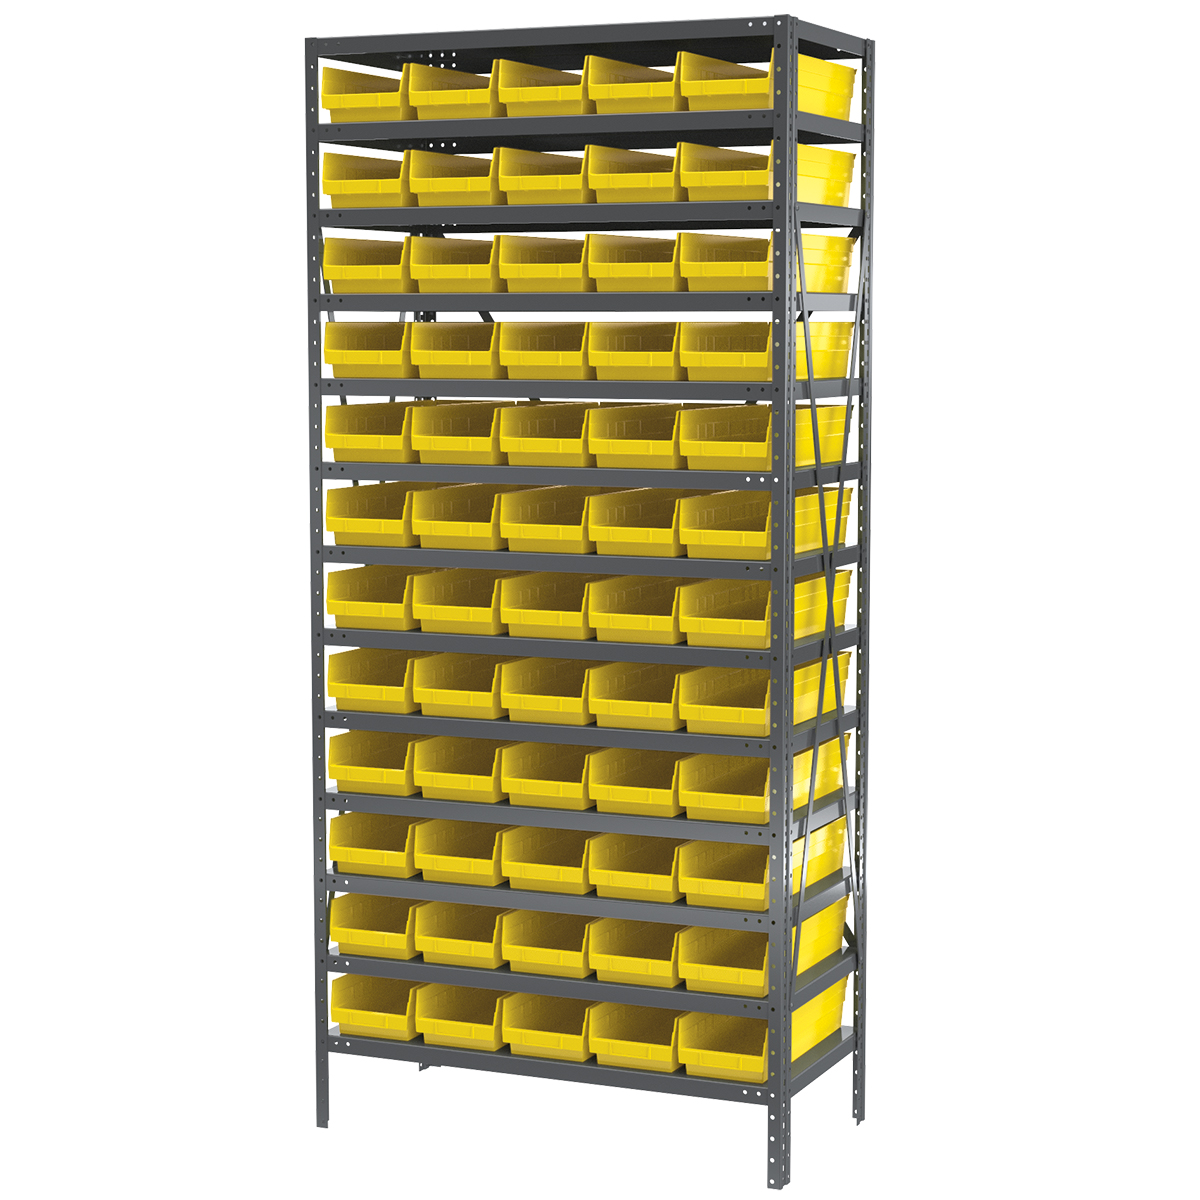 Steel Shelving Kit, 18x36x79, 60 Bins, Gray/Yellow.  This item sold in carton quantities of 1.